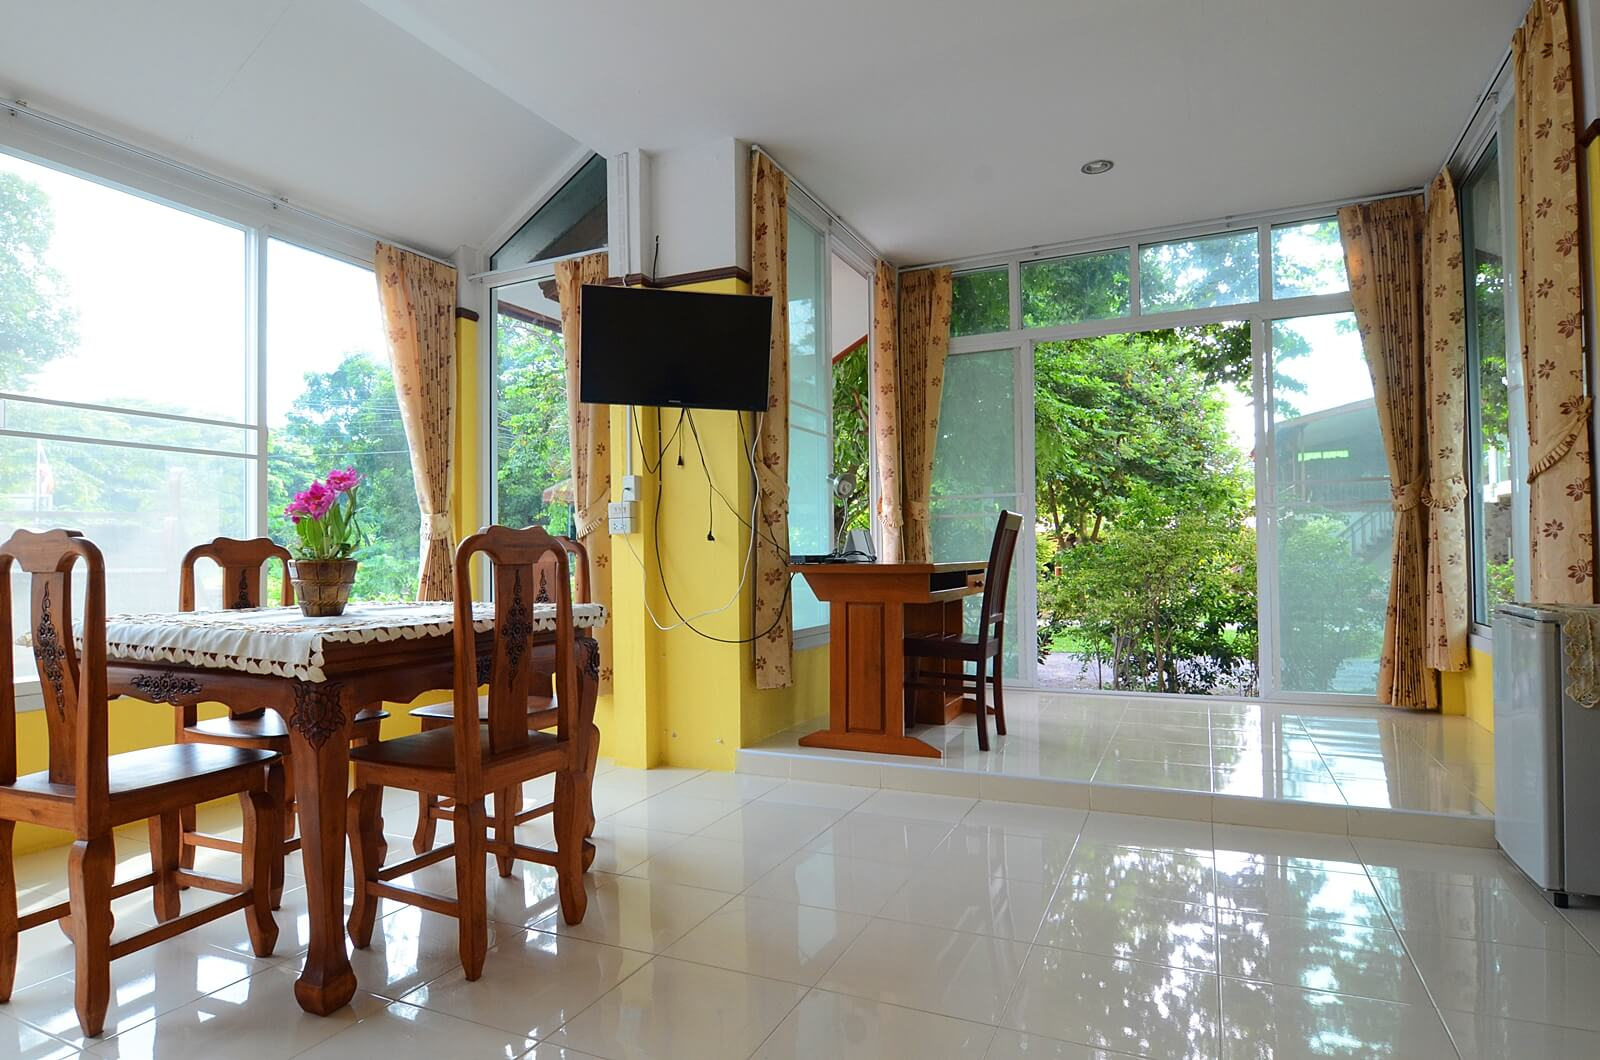 volunteer in thailand private rooms 0 p/week